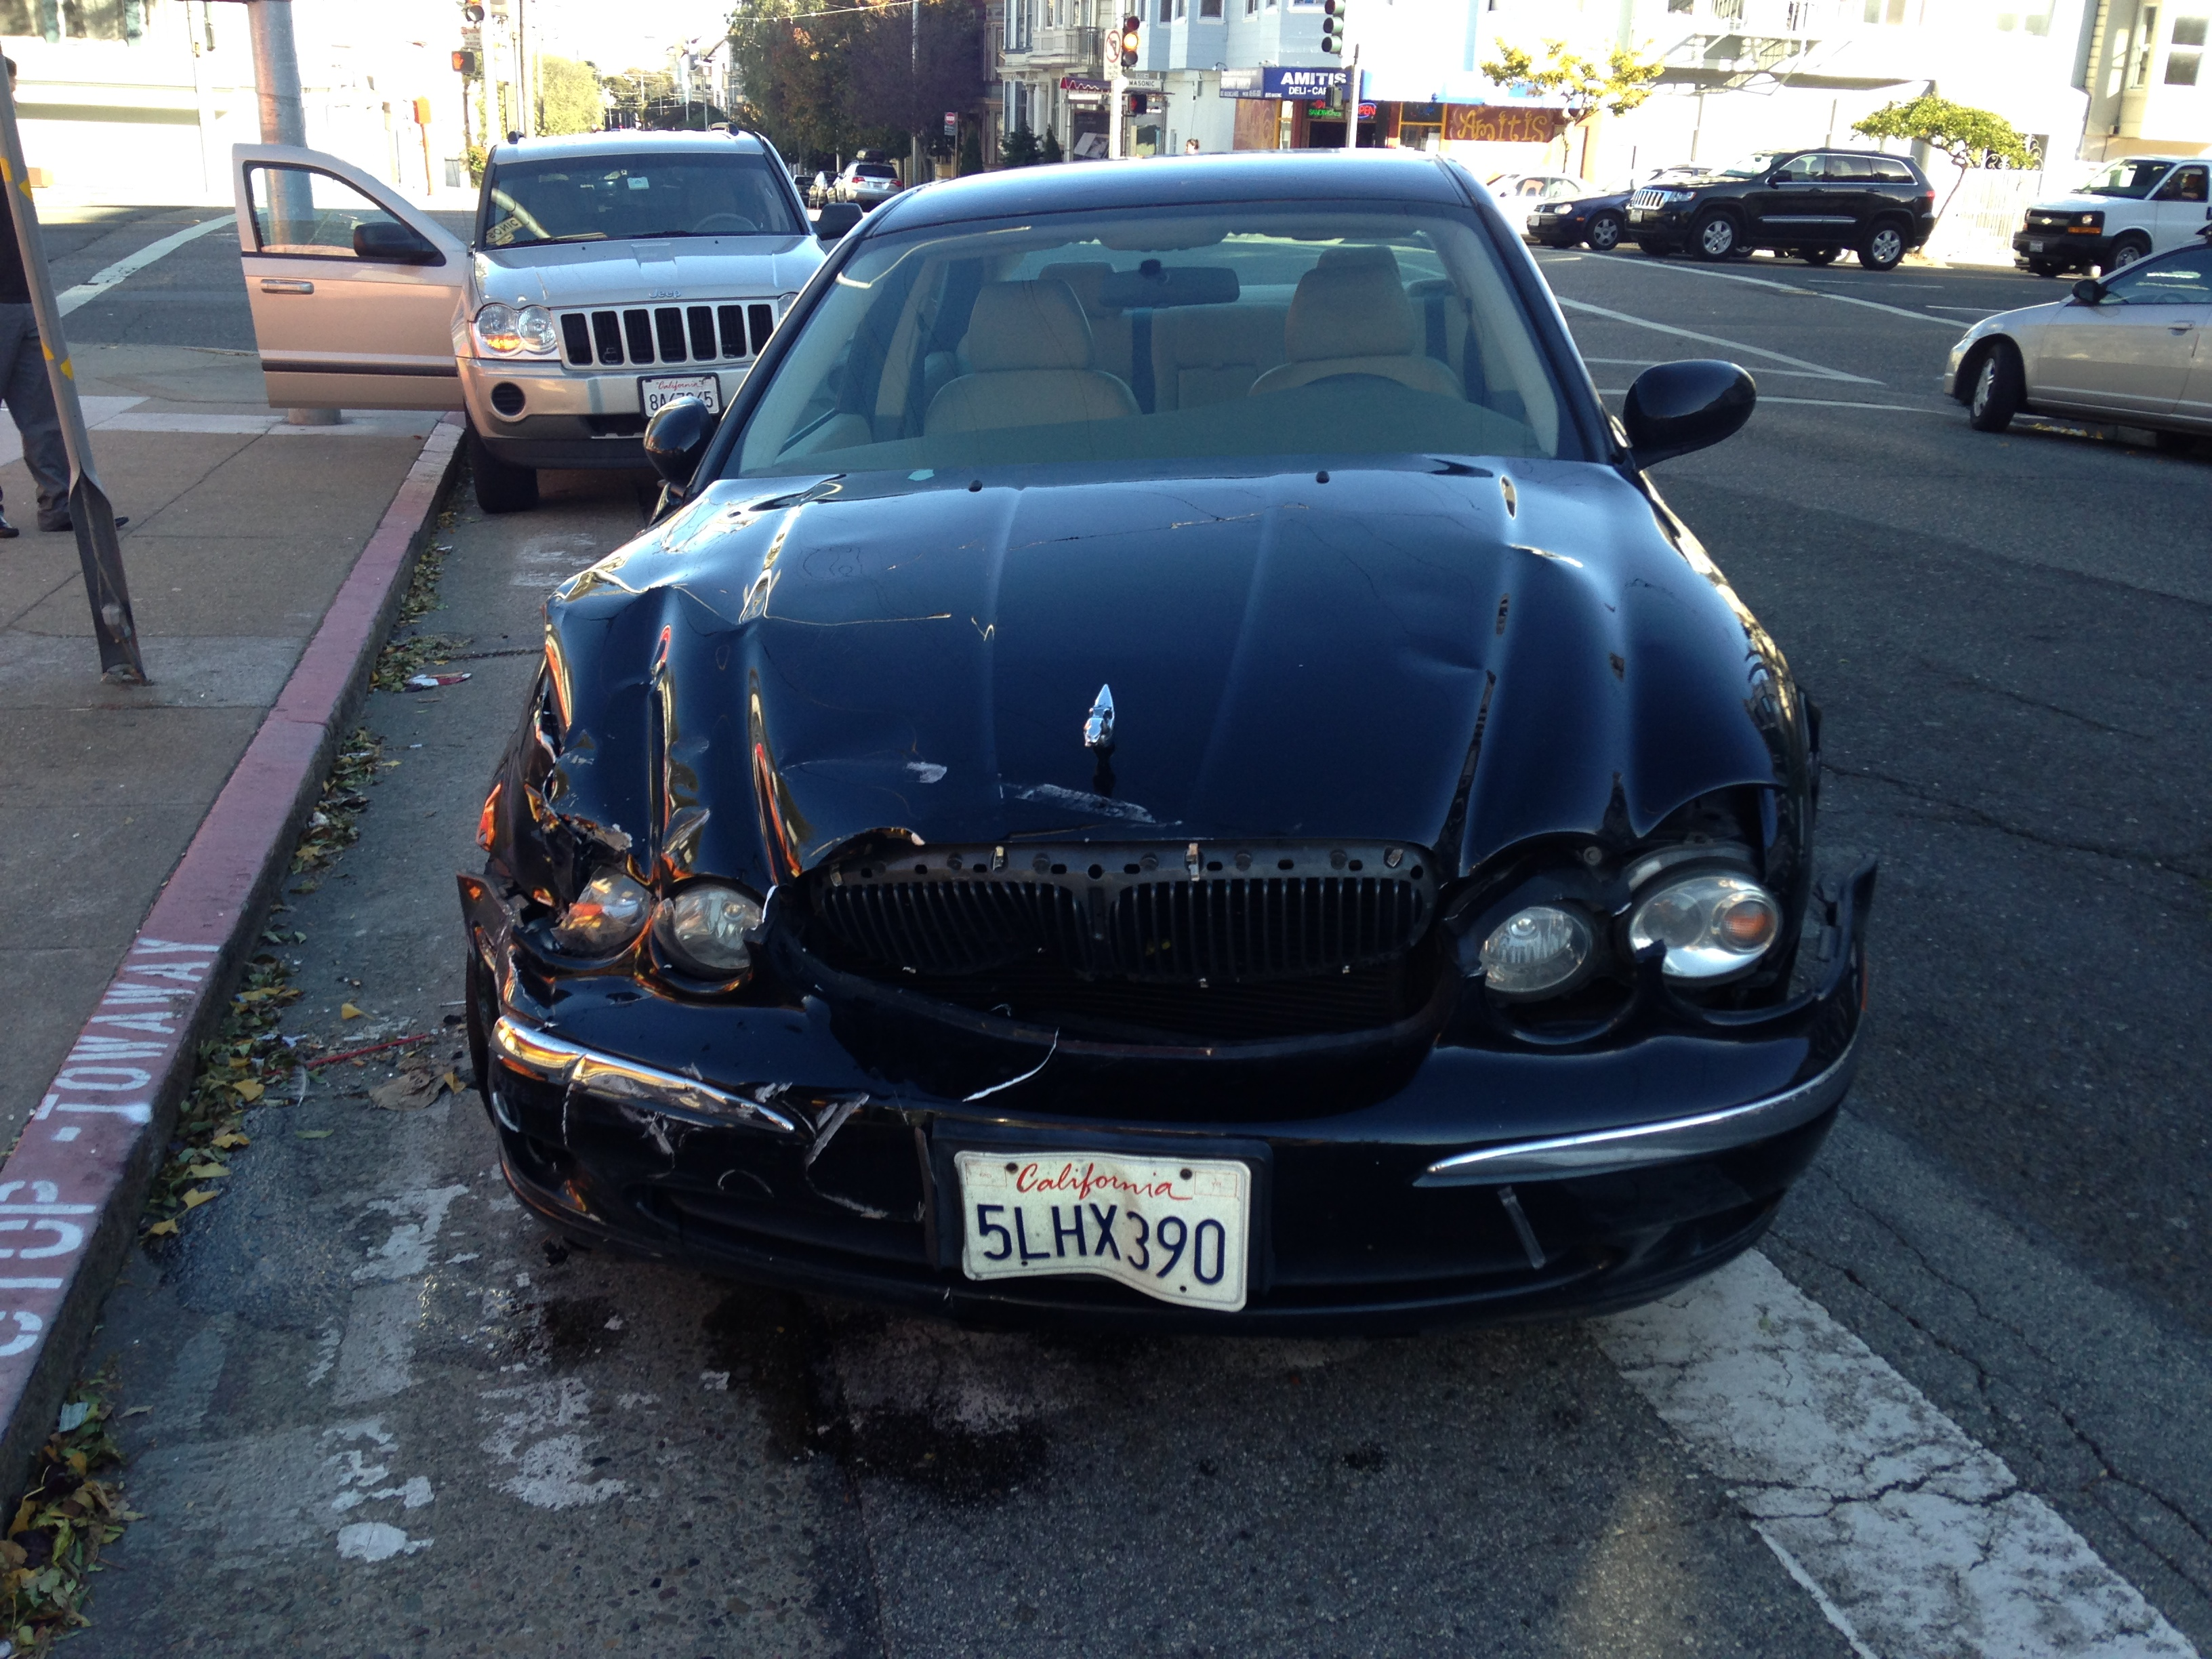 Problem starting an accident/salvage Jaguar: I had an